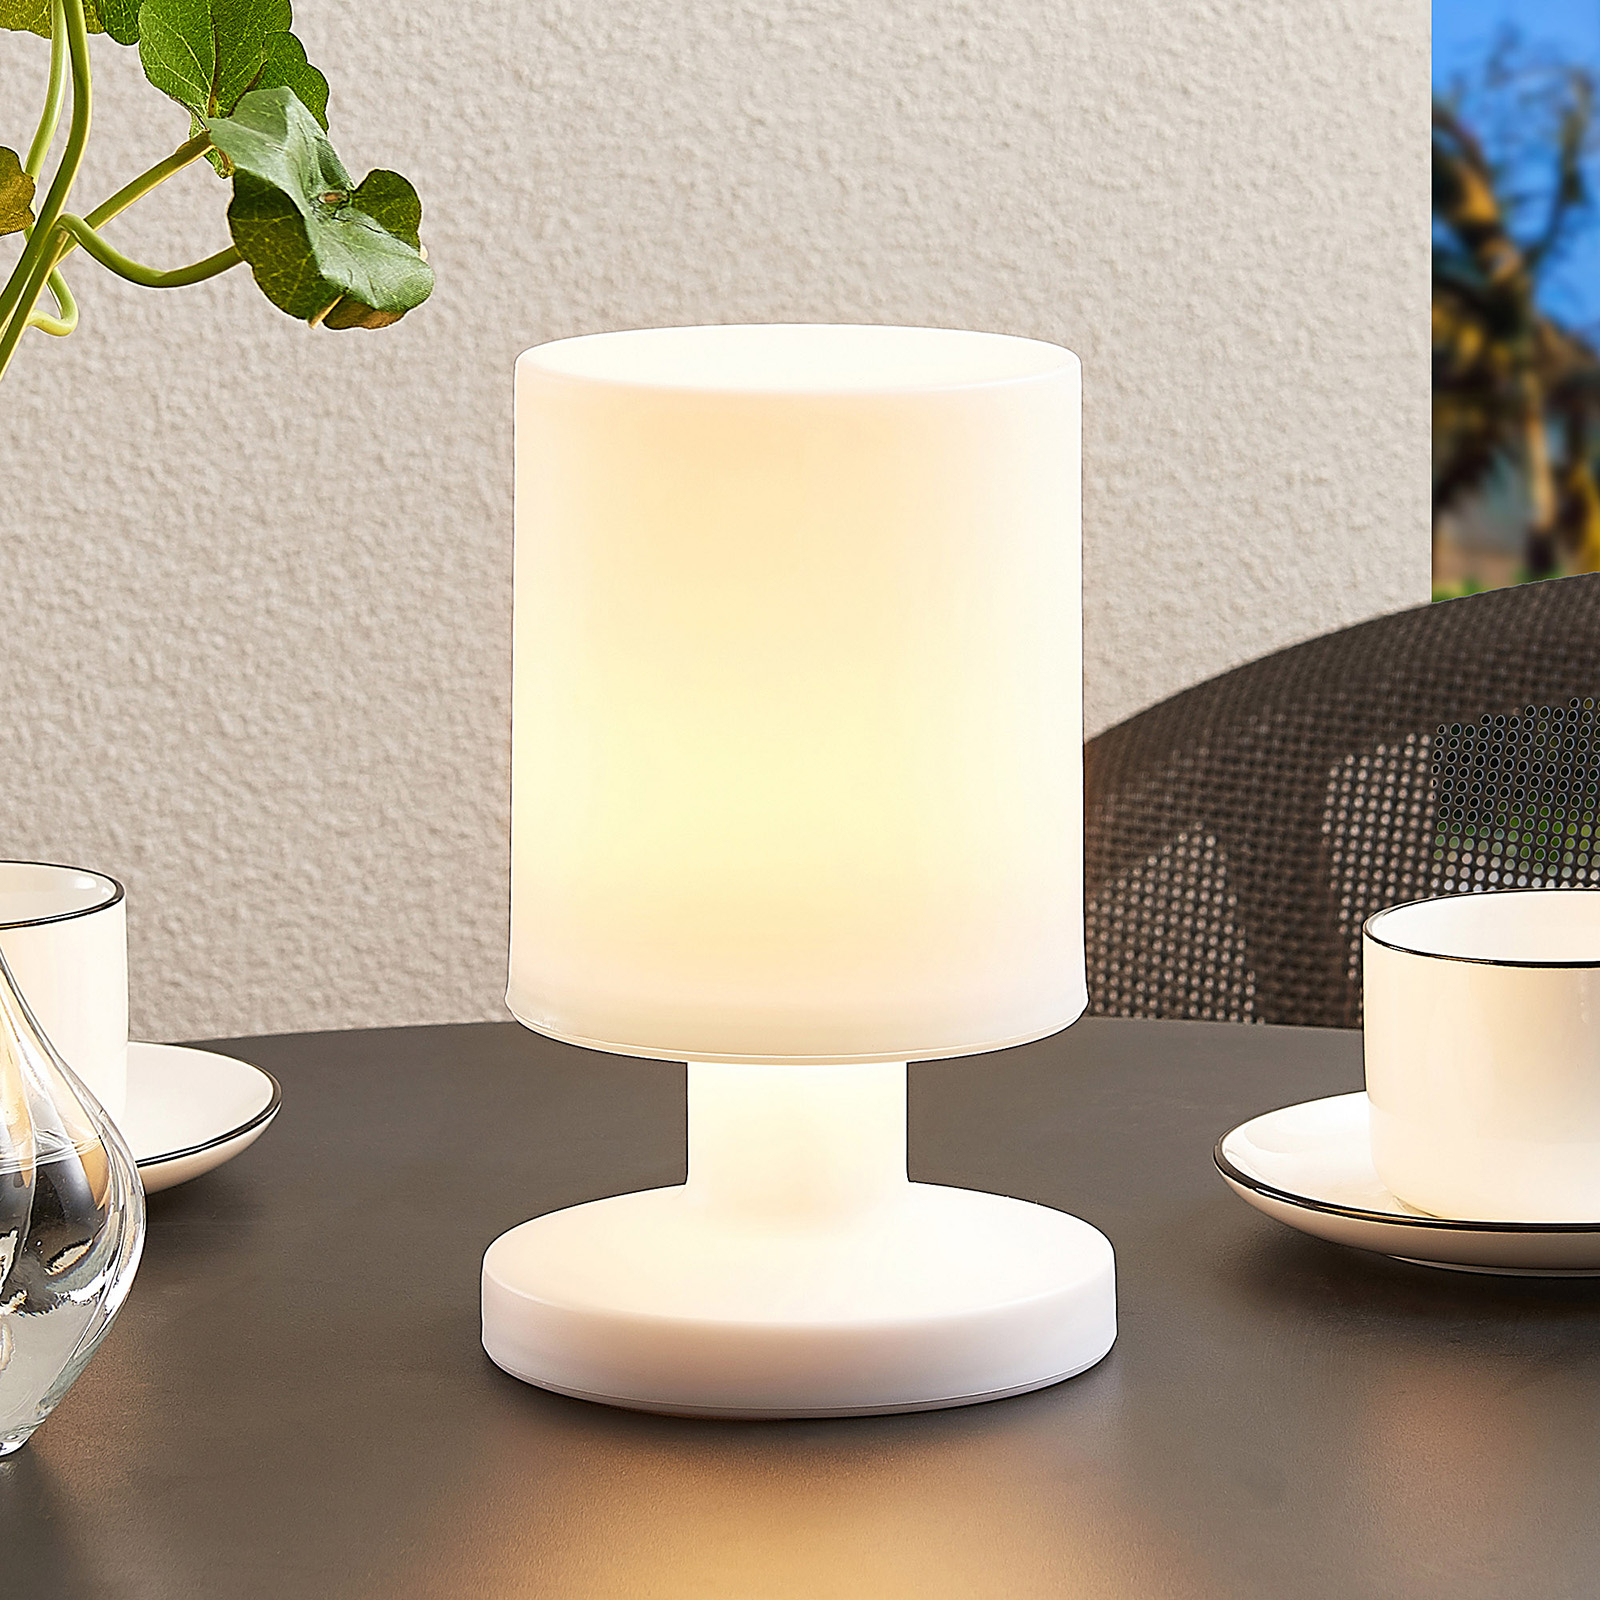 Lindby Grisella LED table lamp with battery, IP44_8032224_1